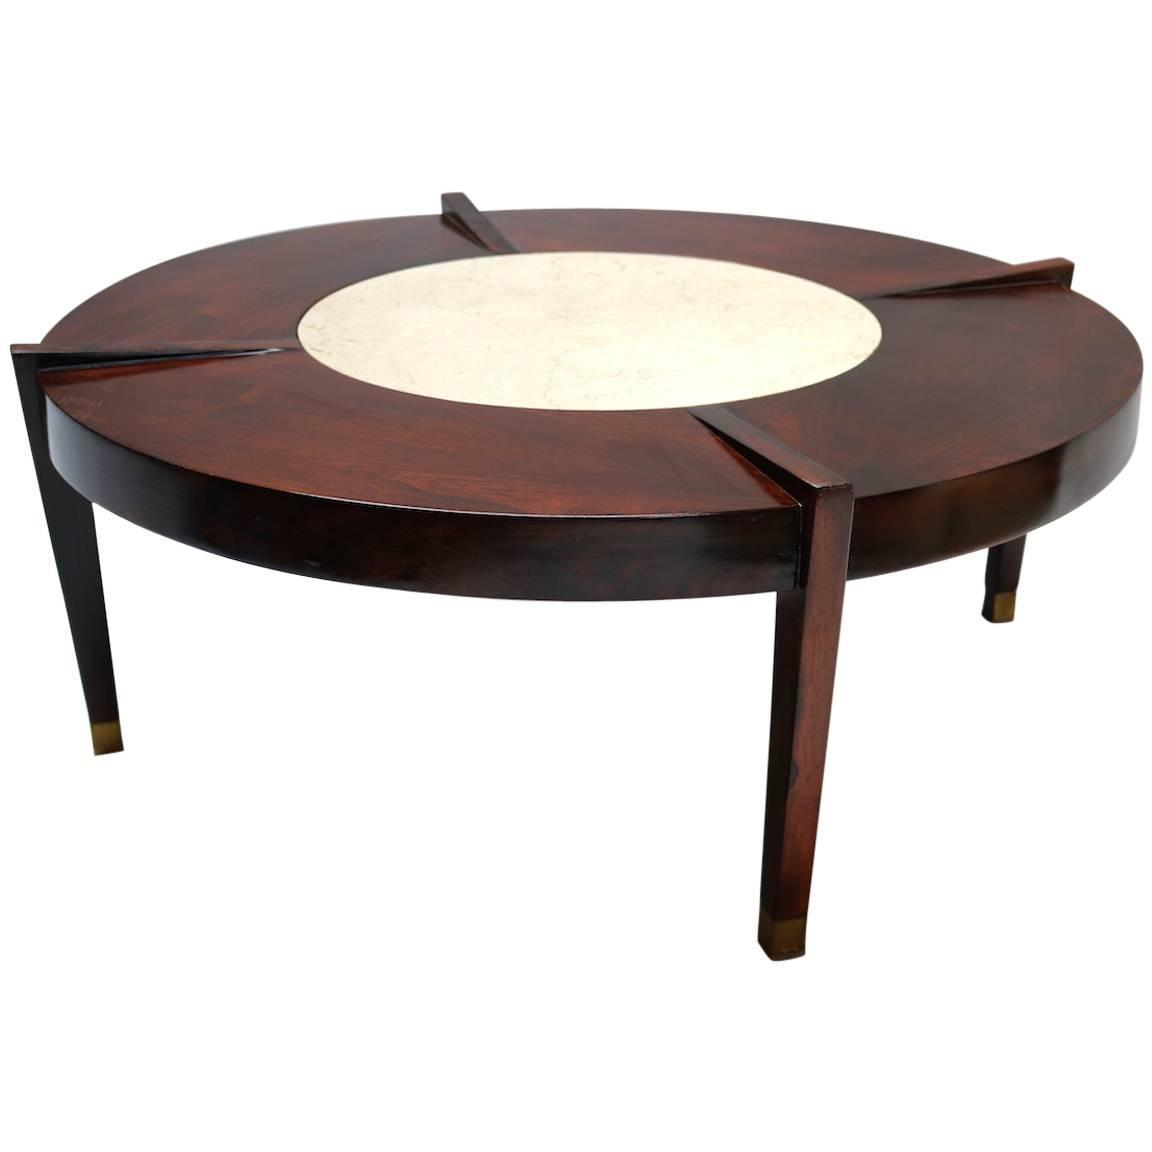 Brazilian jacaranda and marble 1960s round coffee table for sale at 1stdibs Round marble coffee tables